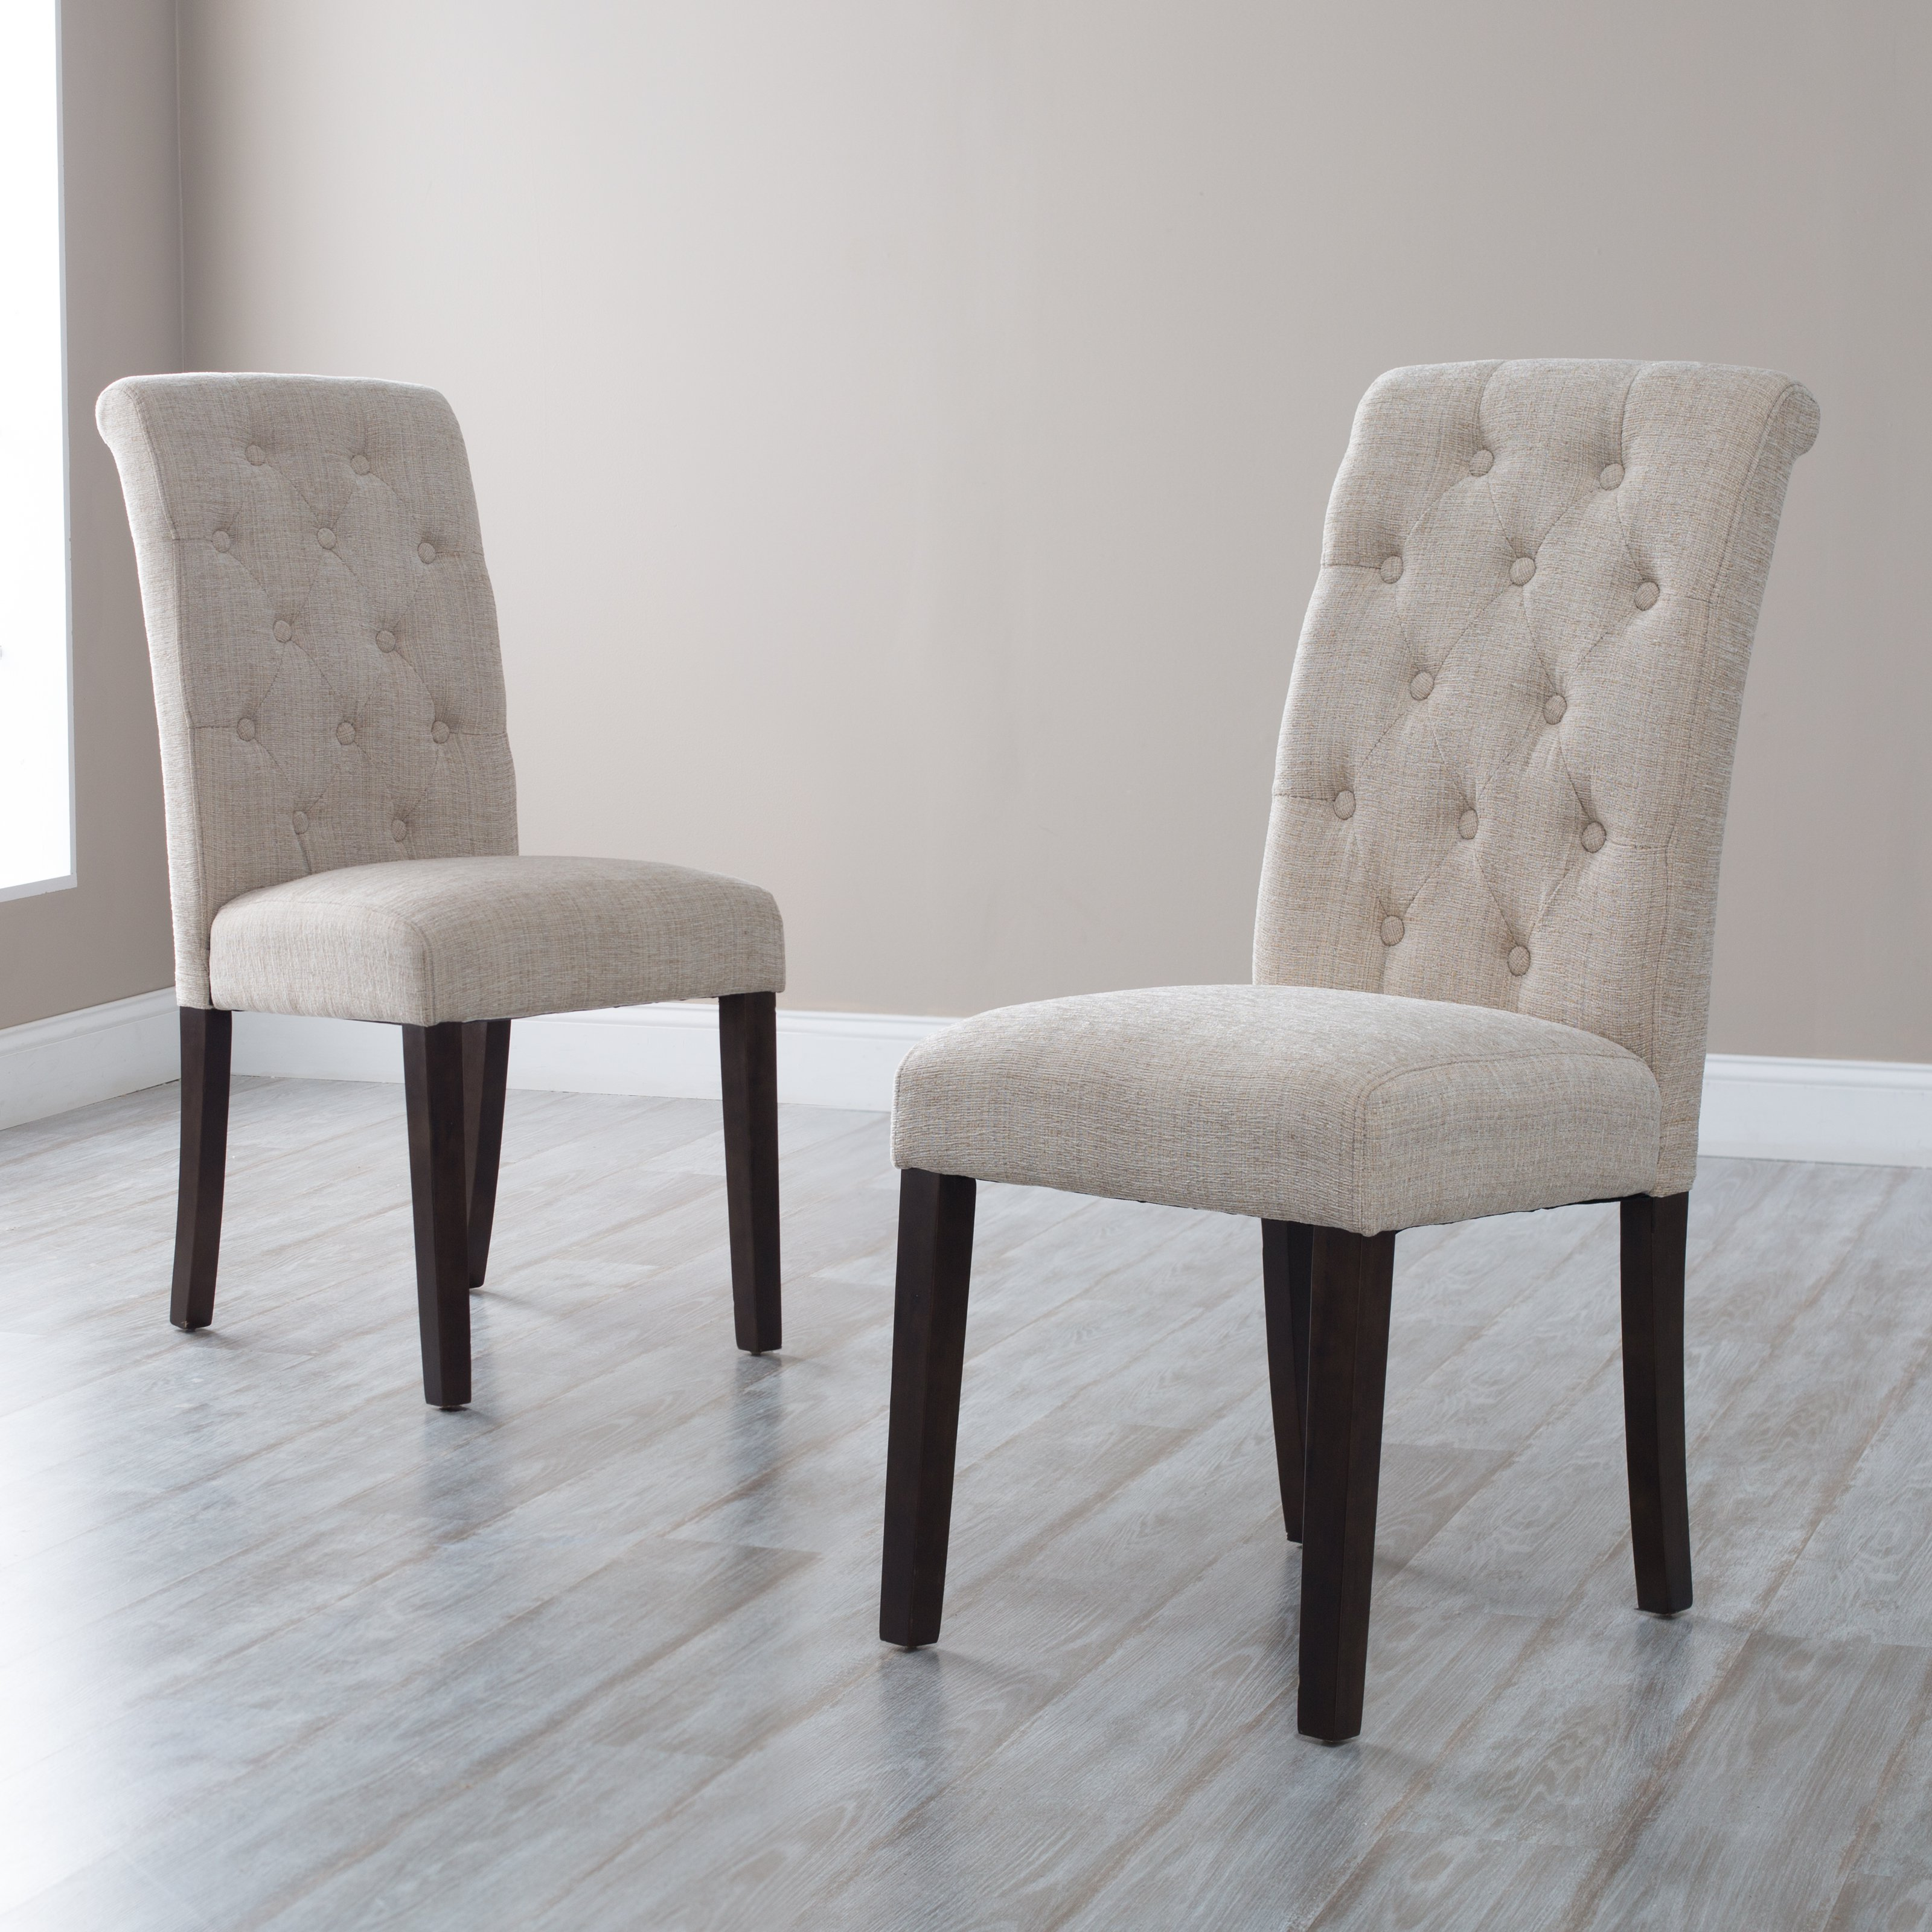 Linen Parsons Chair | Seagrass Dining Chairs | Tufted Dining Chair